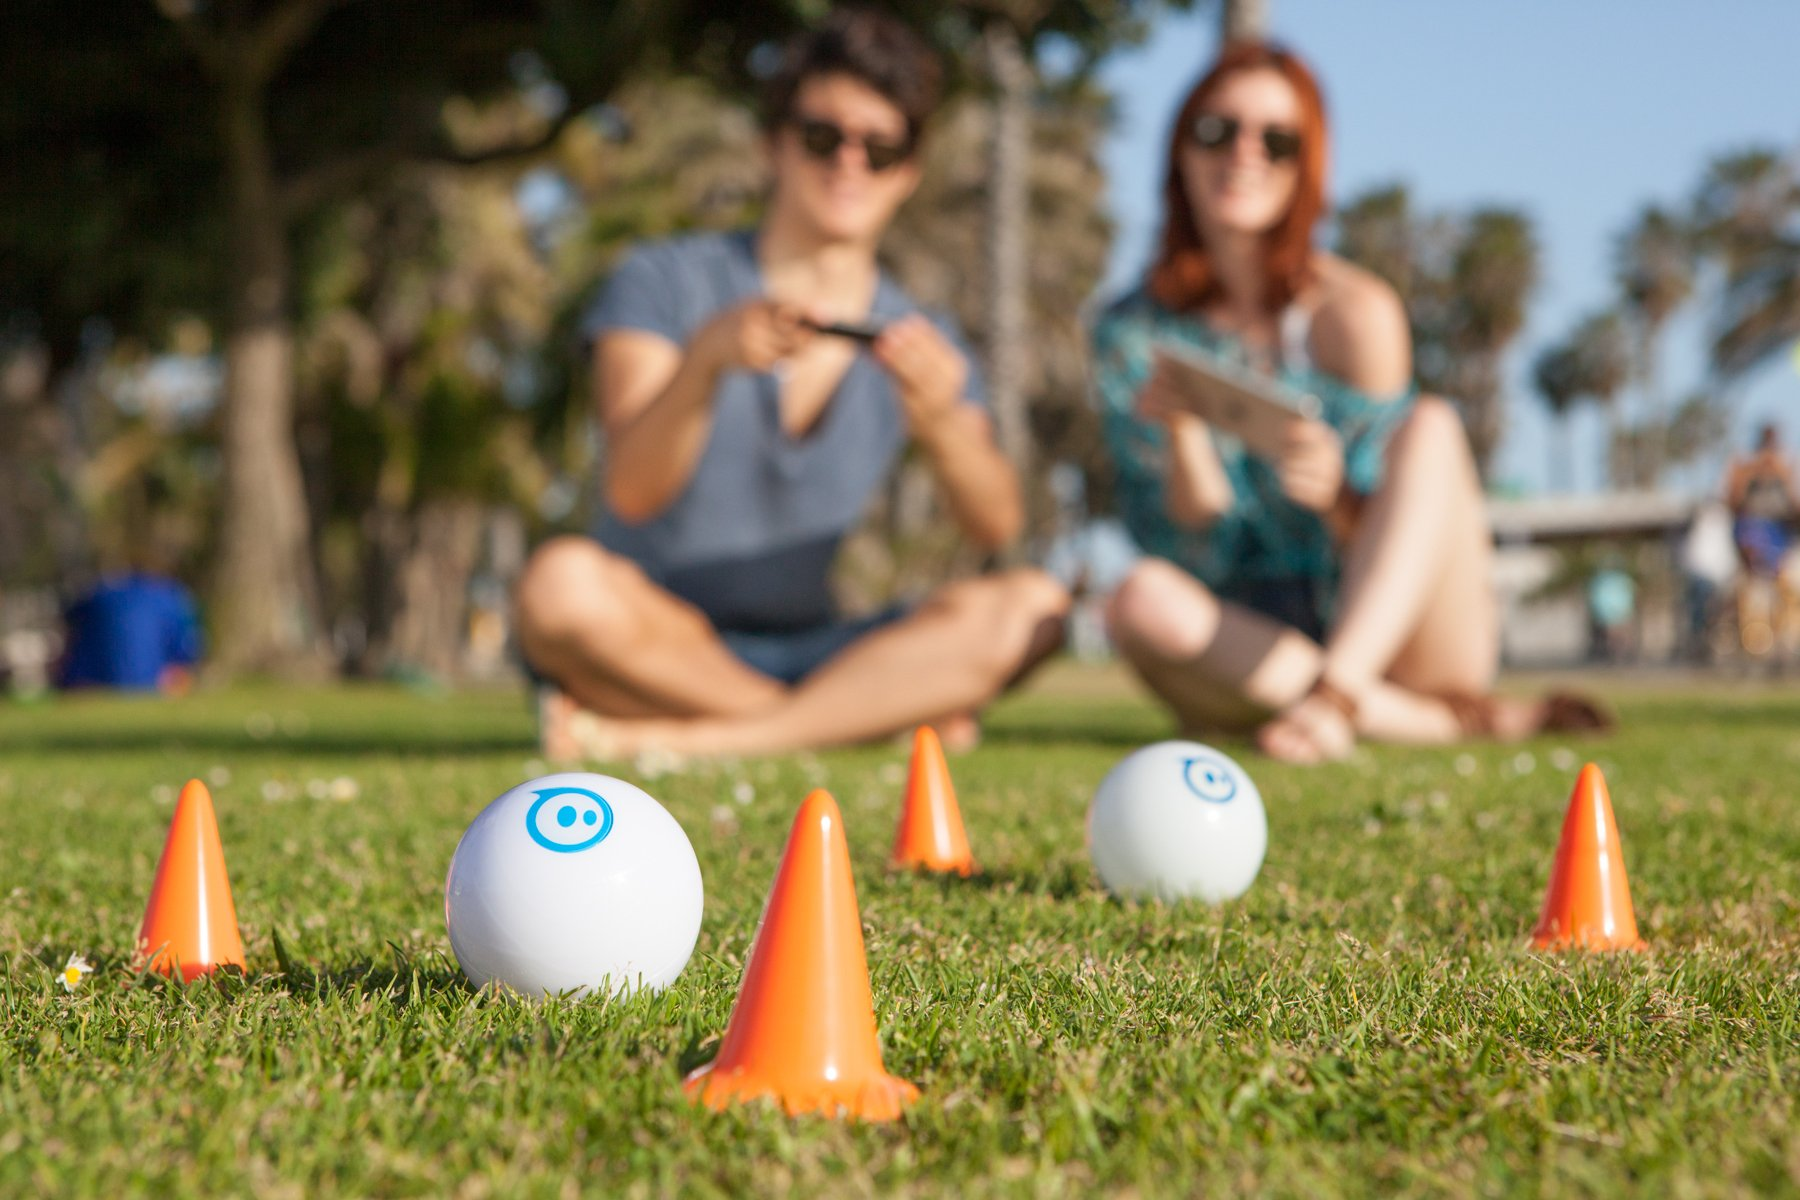 Sphero iOS and Android App Controlled Robotic Ball - Retail Packaging - White (Discontinued by Manufacturer) by Sphero (Image #5)